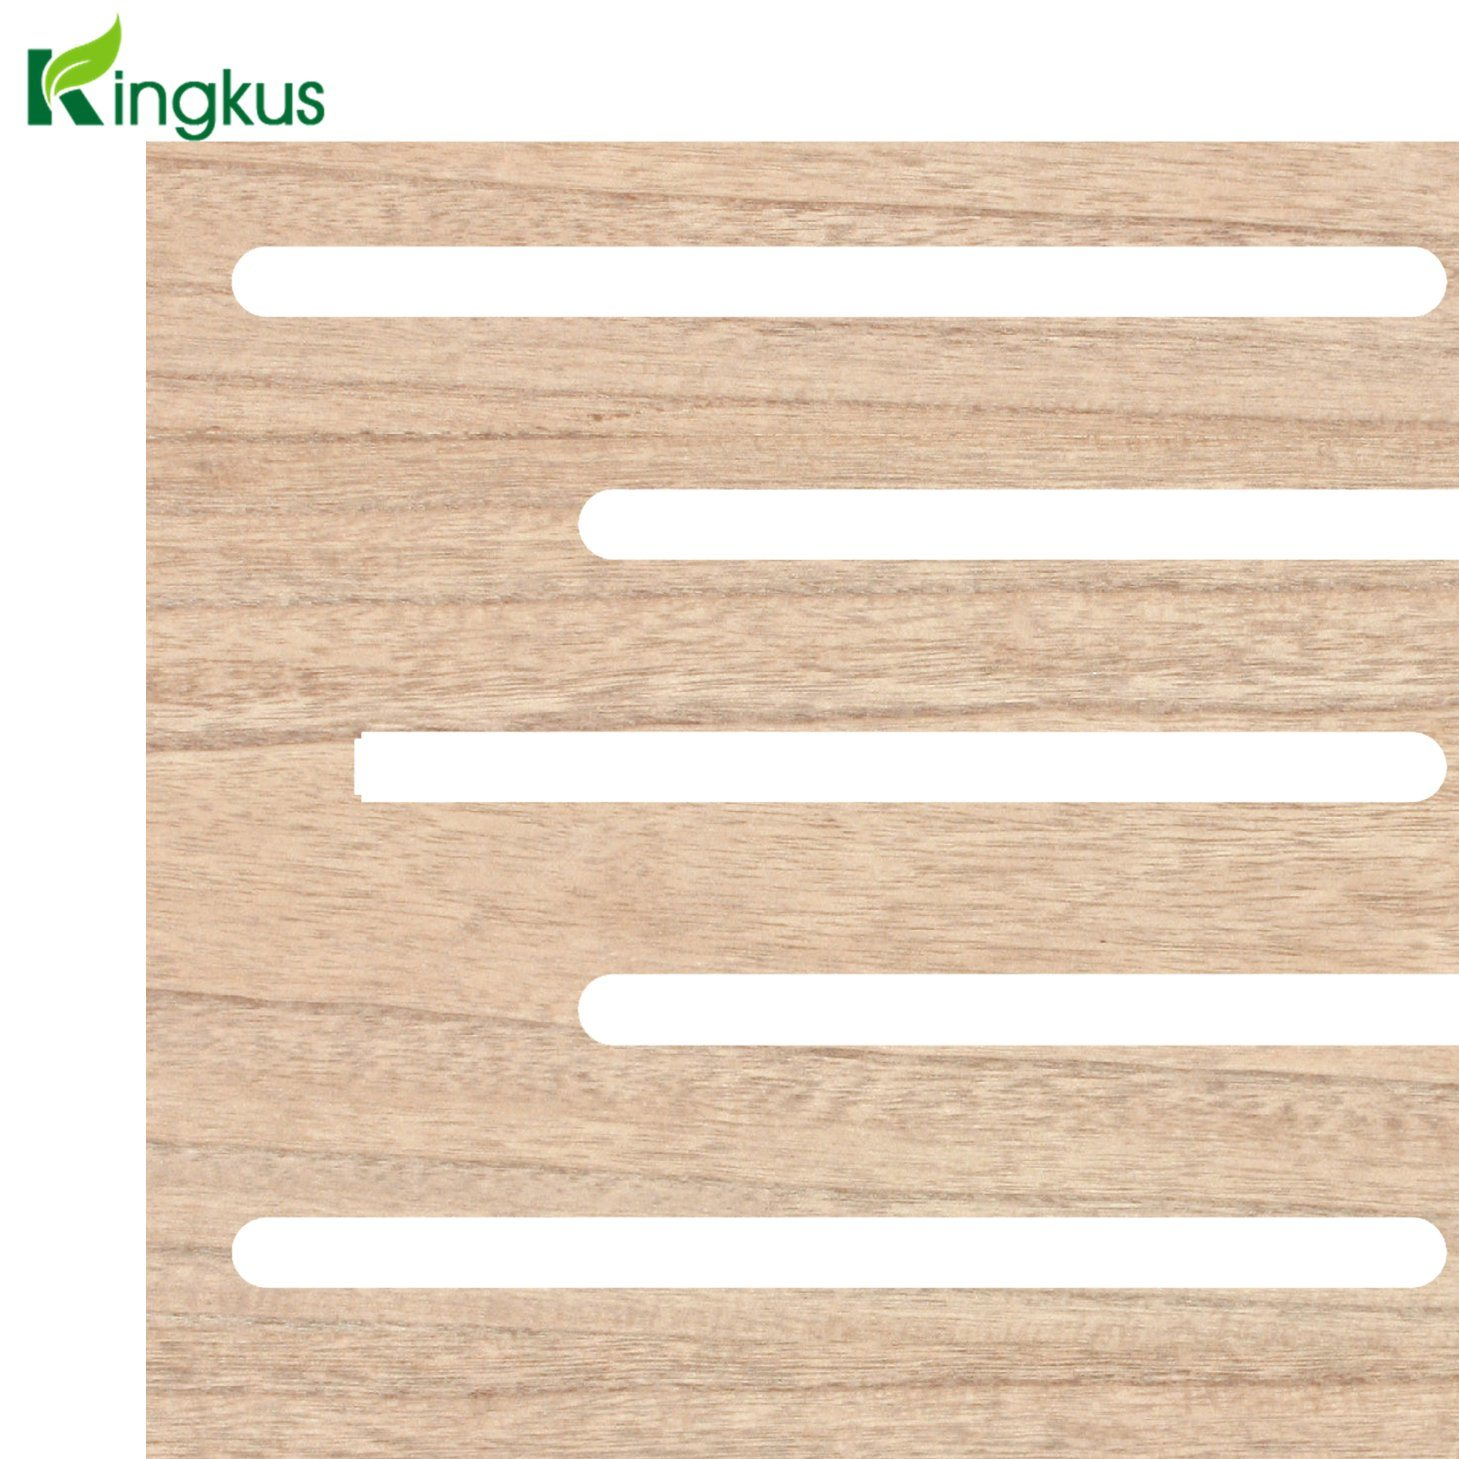 China Sl200 Mdf Acoustic Wooden Panels For Bathroom Kitchen Wall Decorative Photos Pictures Made In China Com